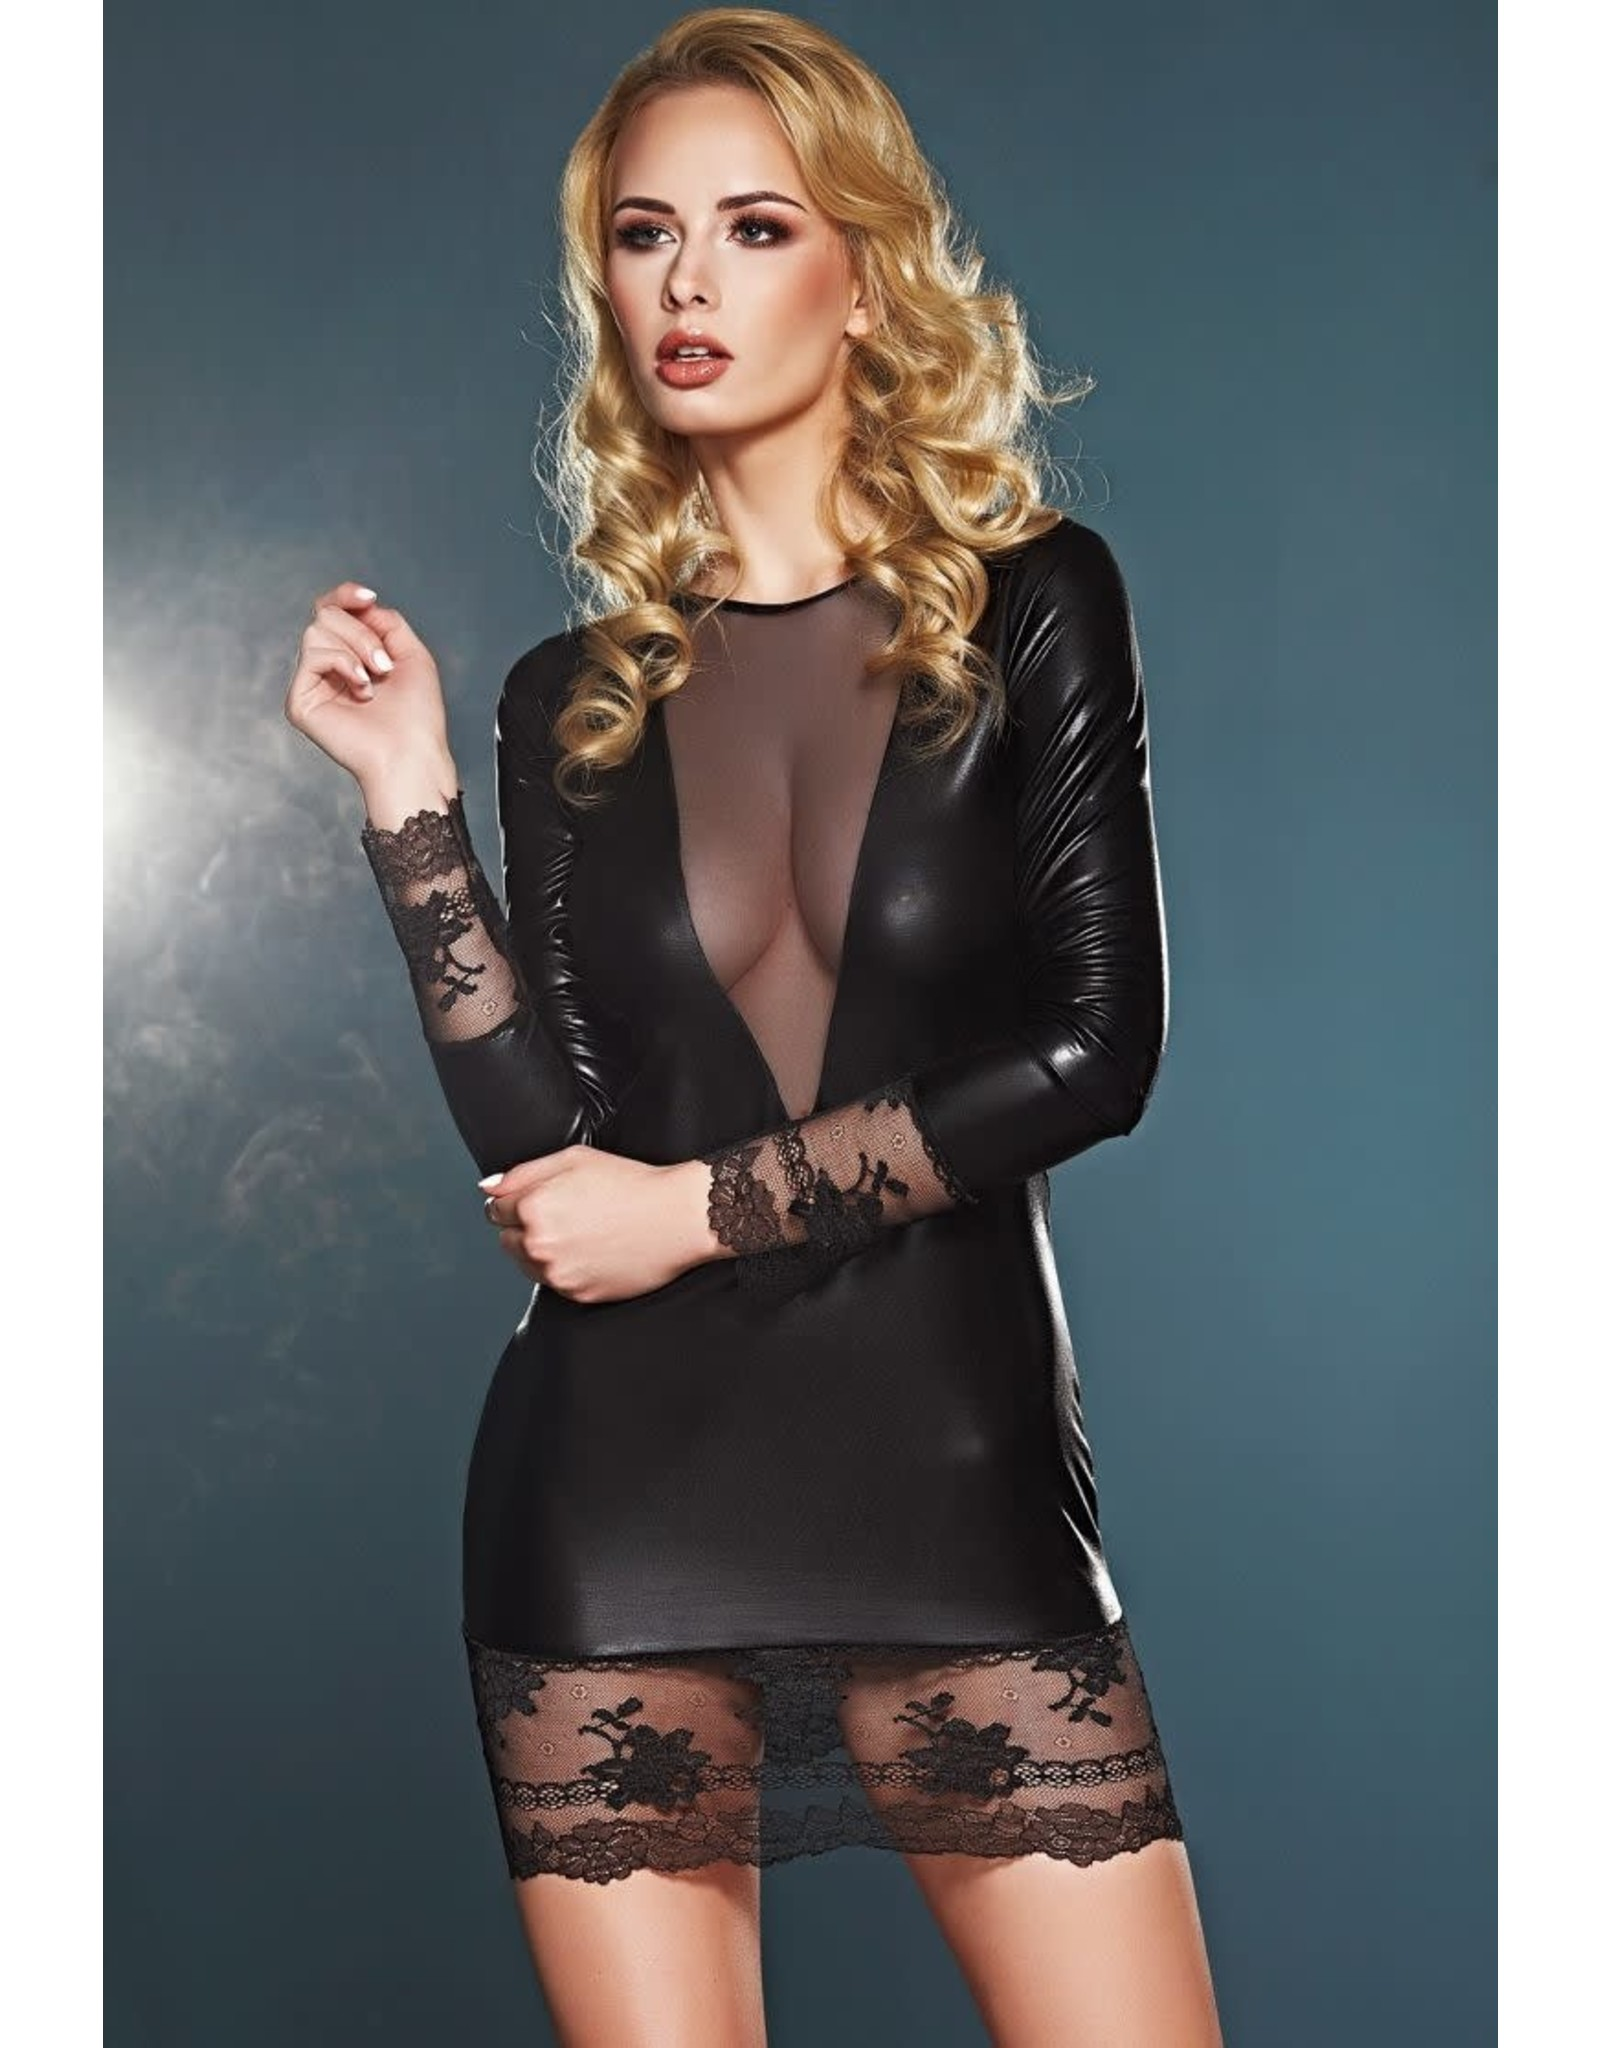 7 HEAVEN 7 HEAVEN - ELEGANT LONG-SLEEVE WET-LOOK DRESS WITH LACE AND TULLE DETAILS - 2XL - BLACK